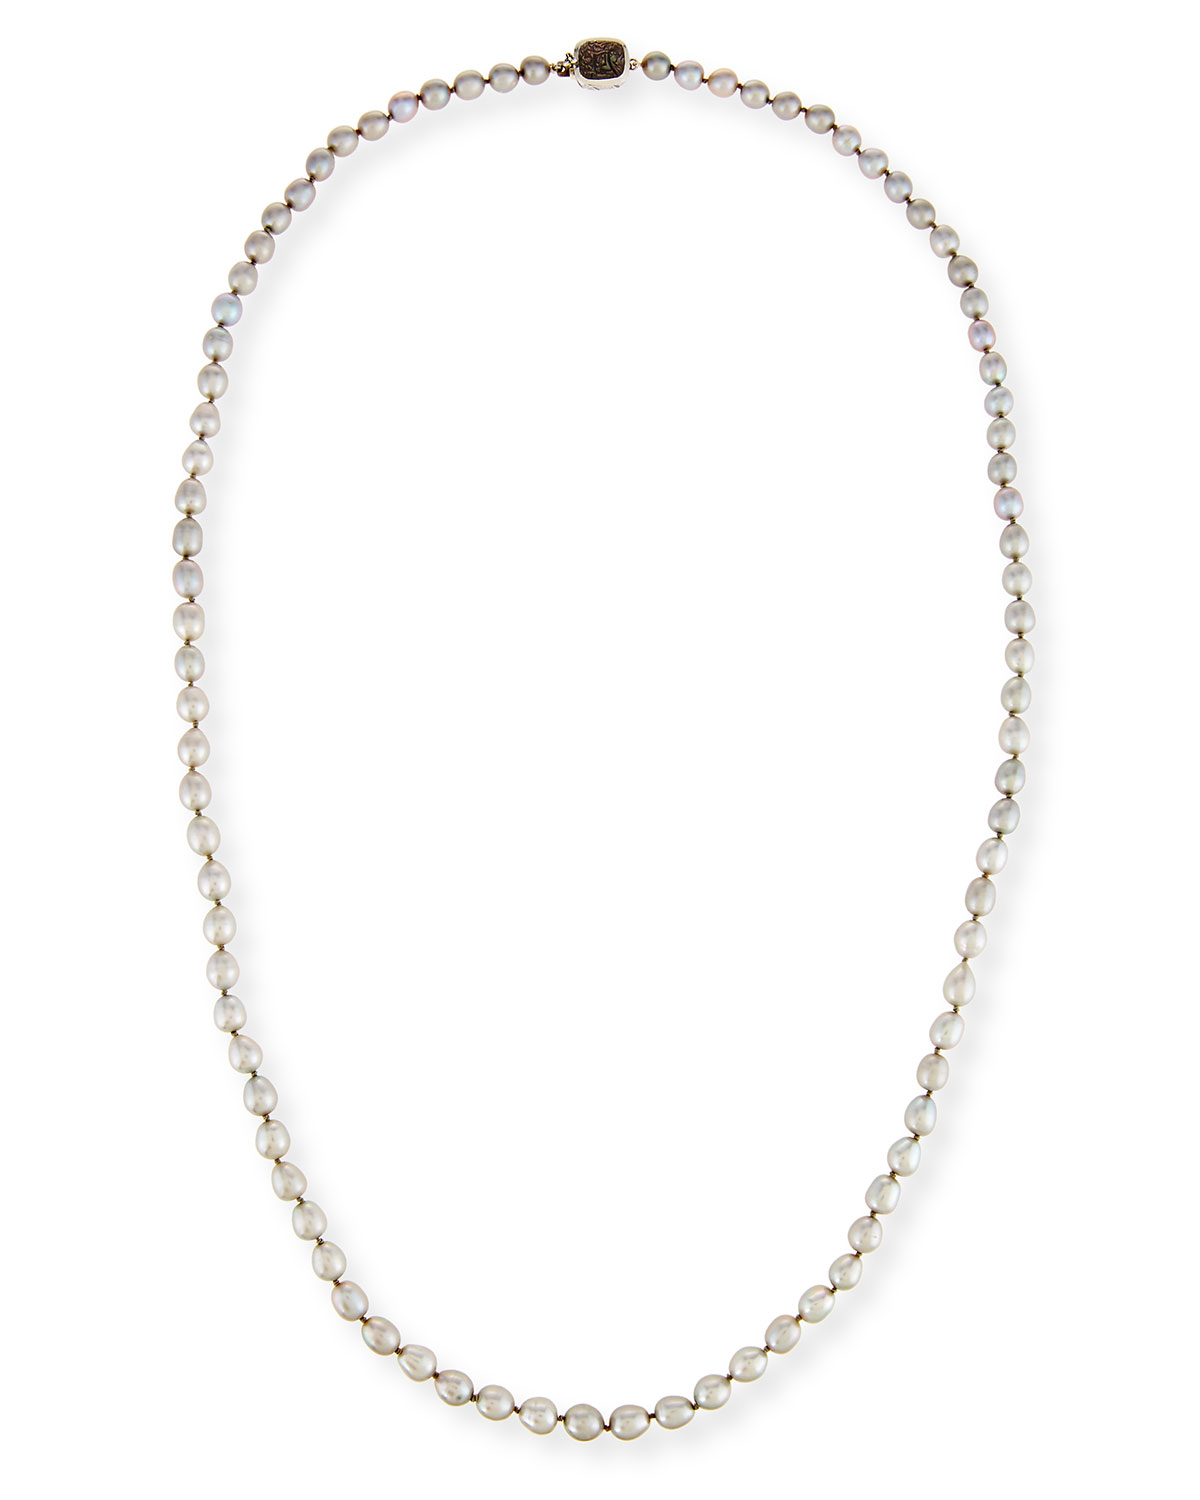 Small Baroque Pearl Necklace, 34